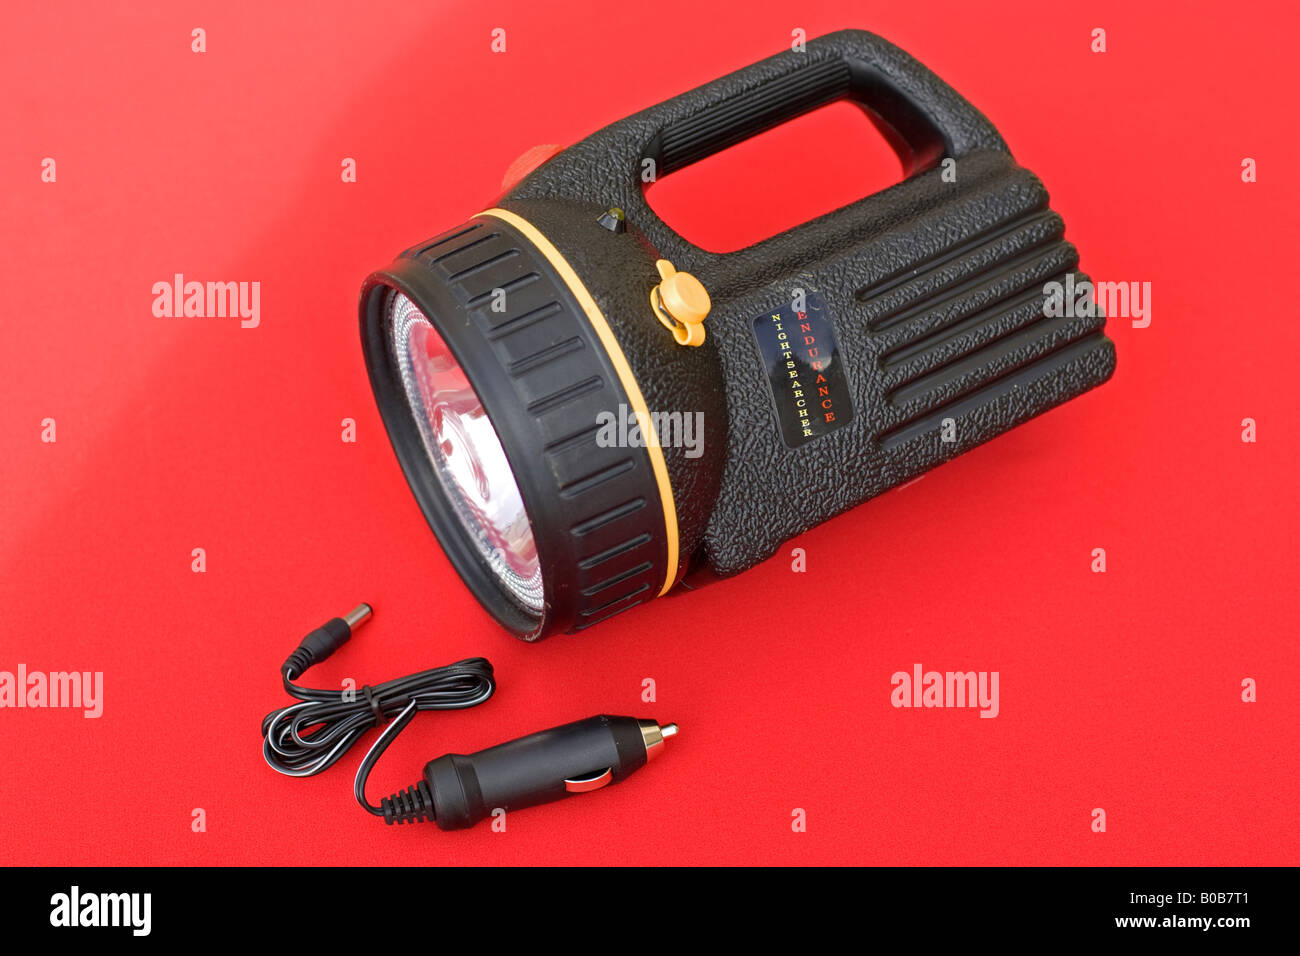 Powerful rechargeable torch with charger UK - Stock Image